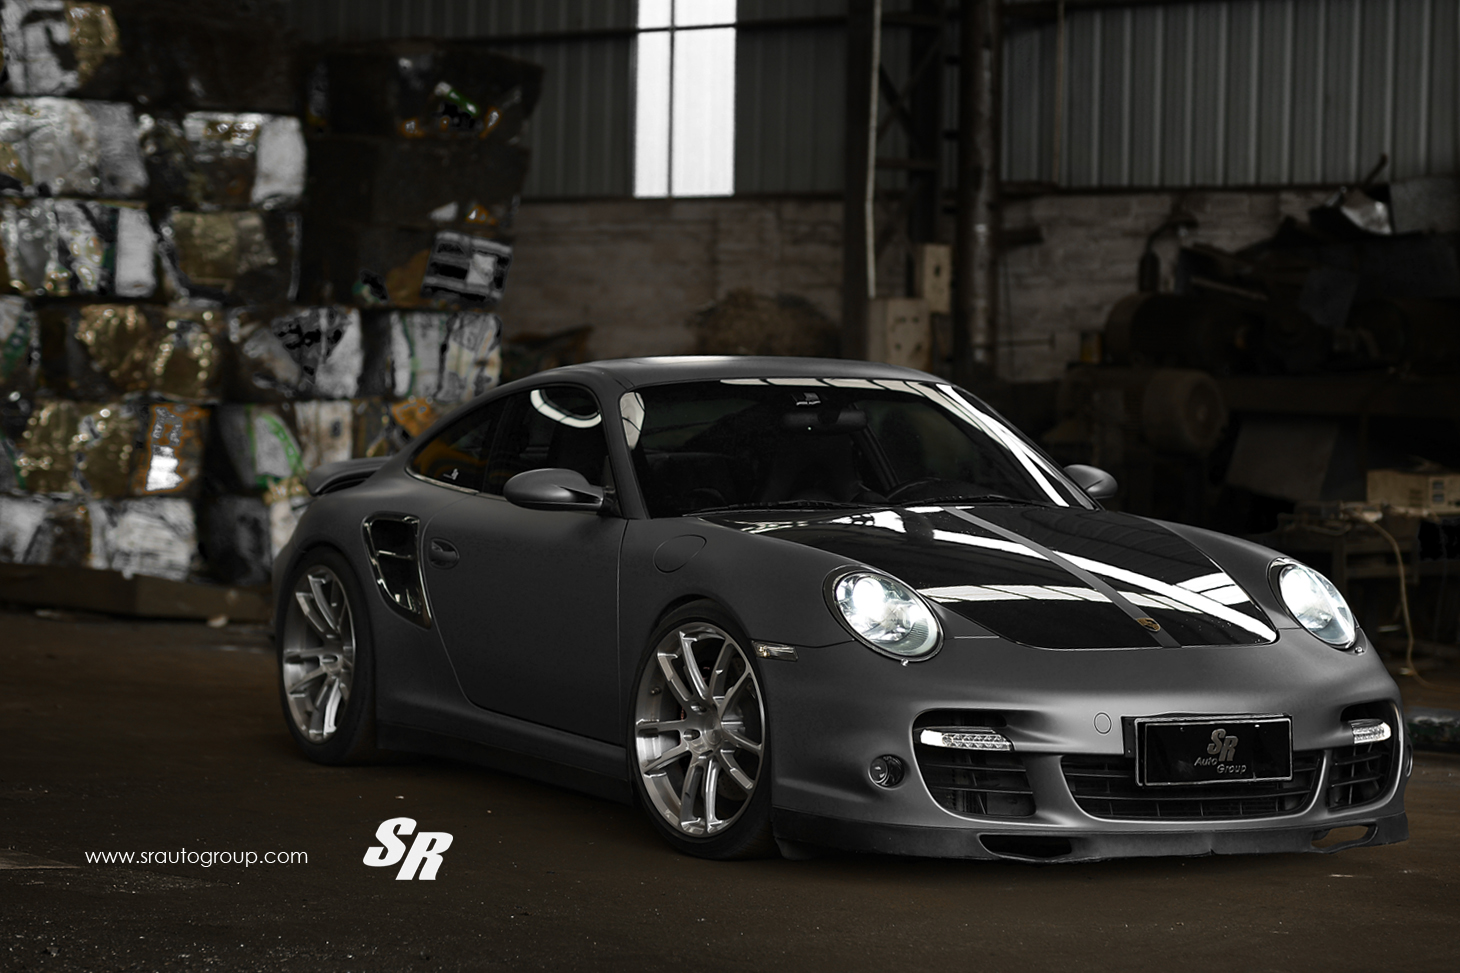 Porsche 911 Turbo 997 Restyled By Sr Autogroup Autoevolution